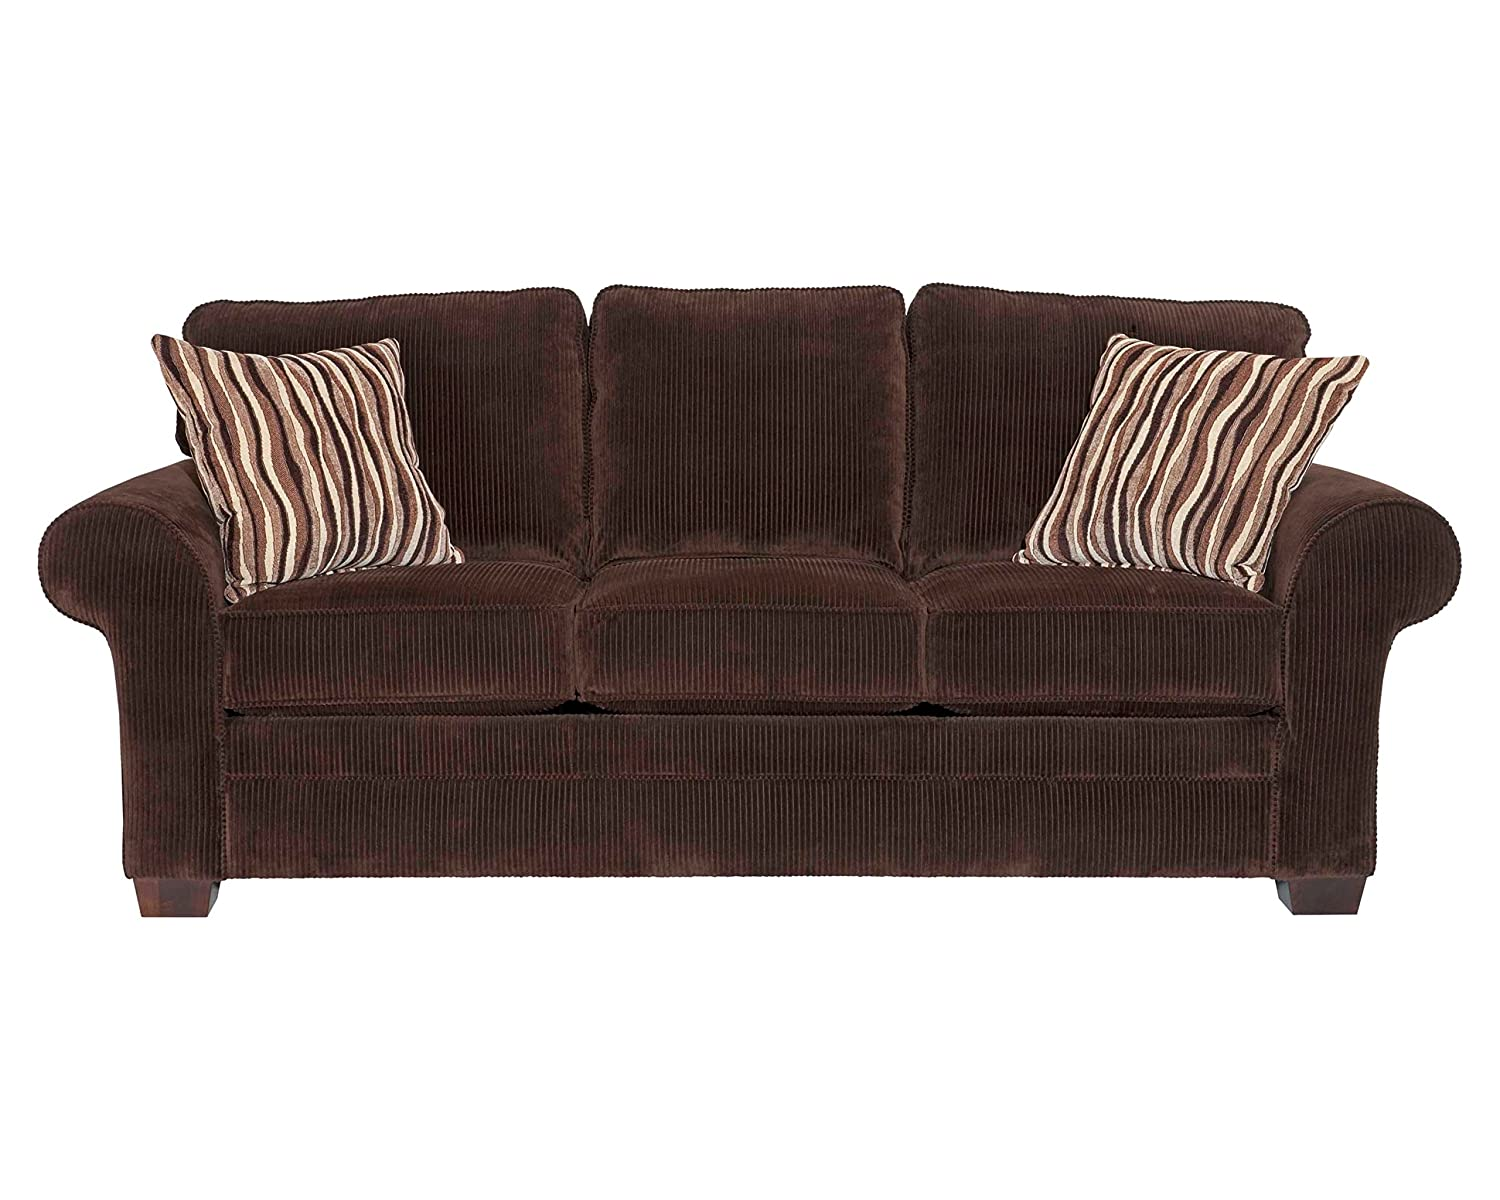 Amazon Broyhill Zachary Sofa Brown Chocolate Kitchen & Dining